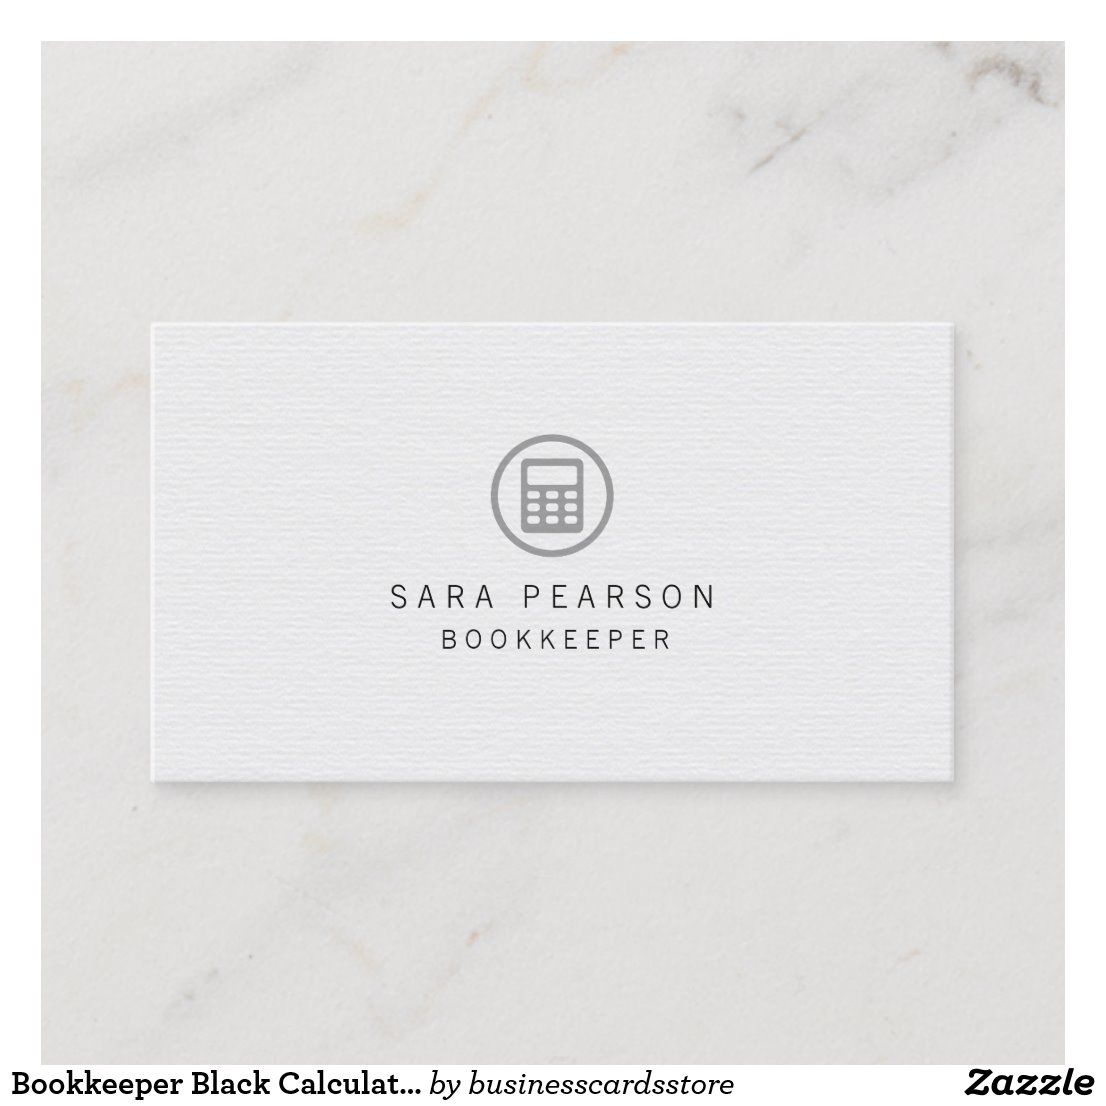 Bookkeeper Black Calculator Icon Finance Business Card Zazzle Com Business Finance Bookkeeping Accounting And Finance